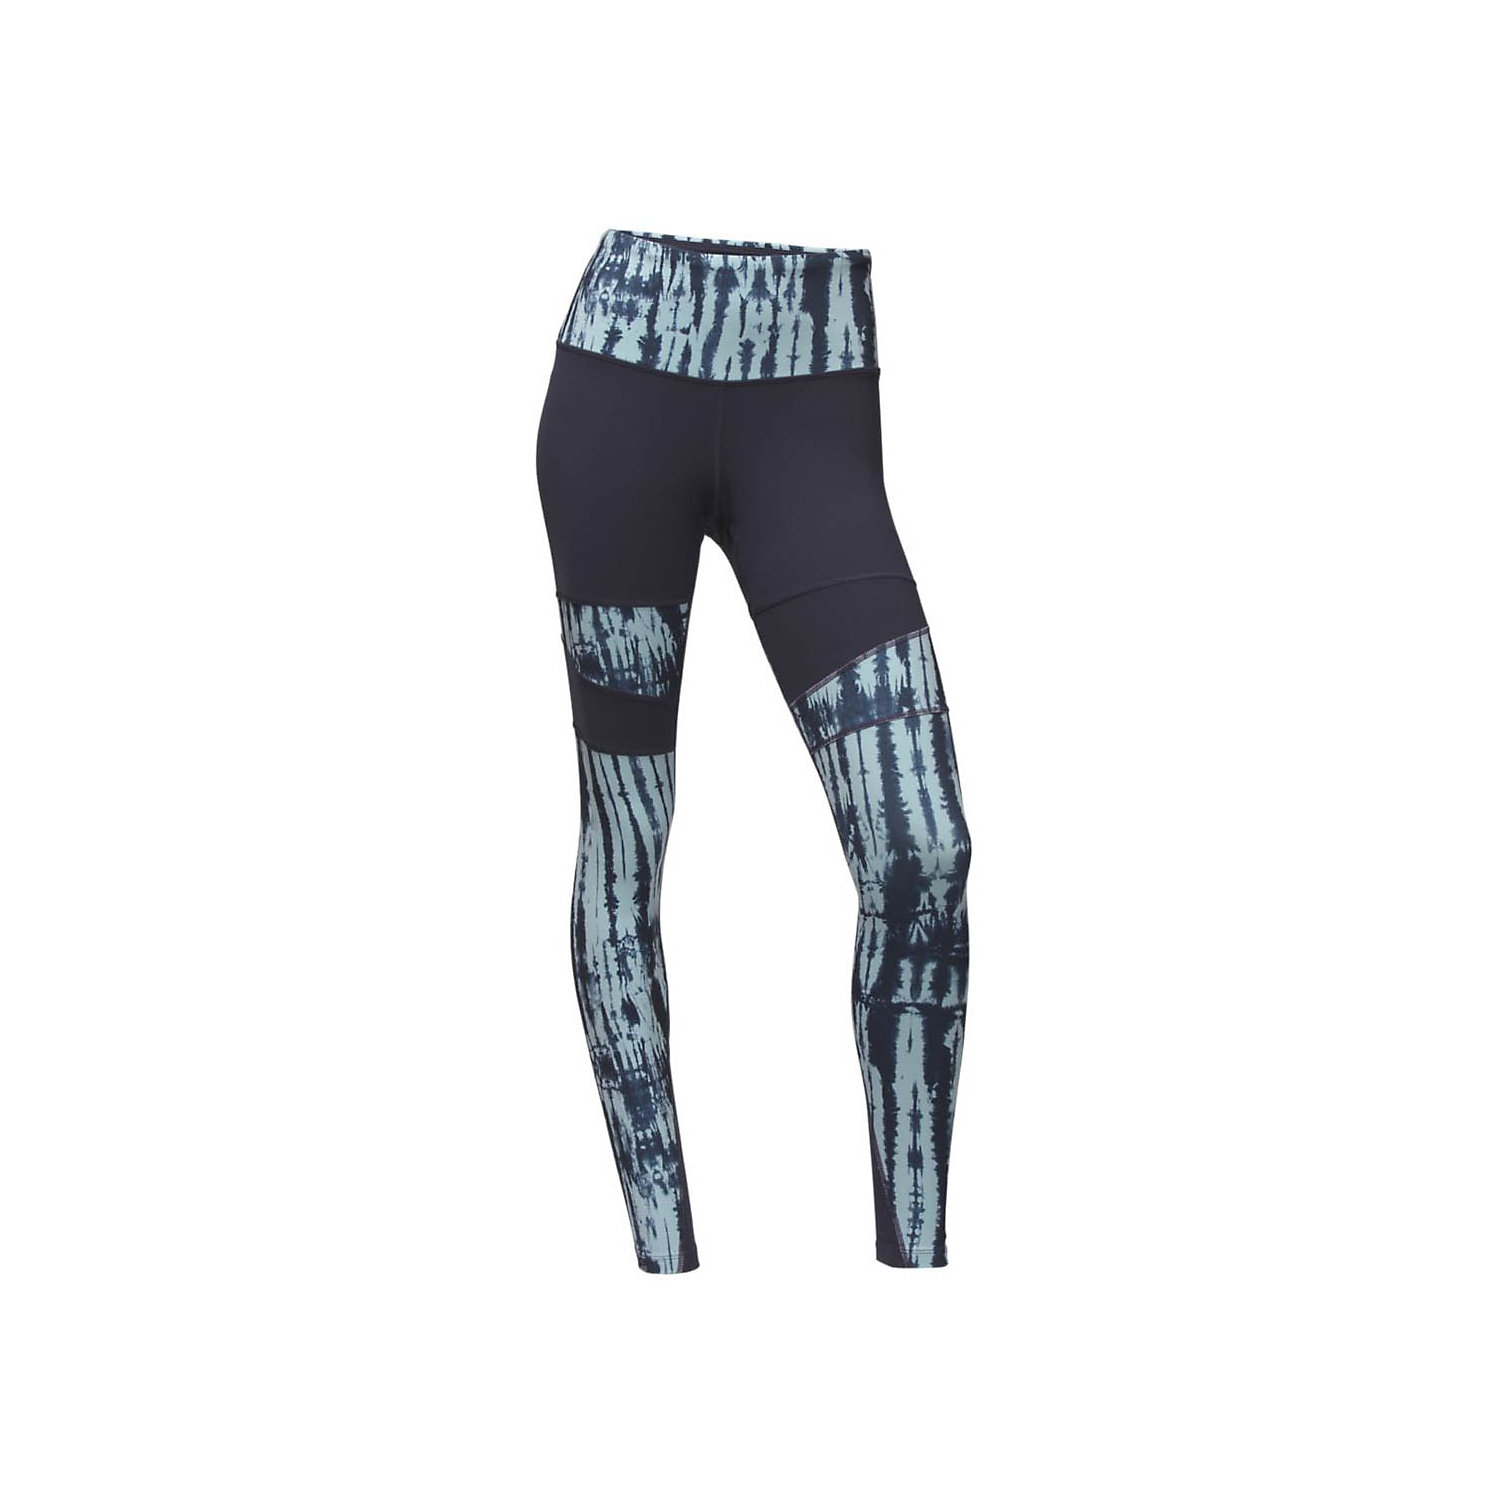 a2bbfdbd0ee943 The North Face Women's Motivation High-Rise Printed Tight - Moosejaw